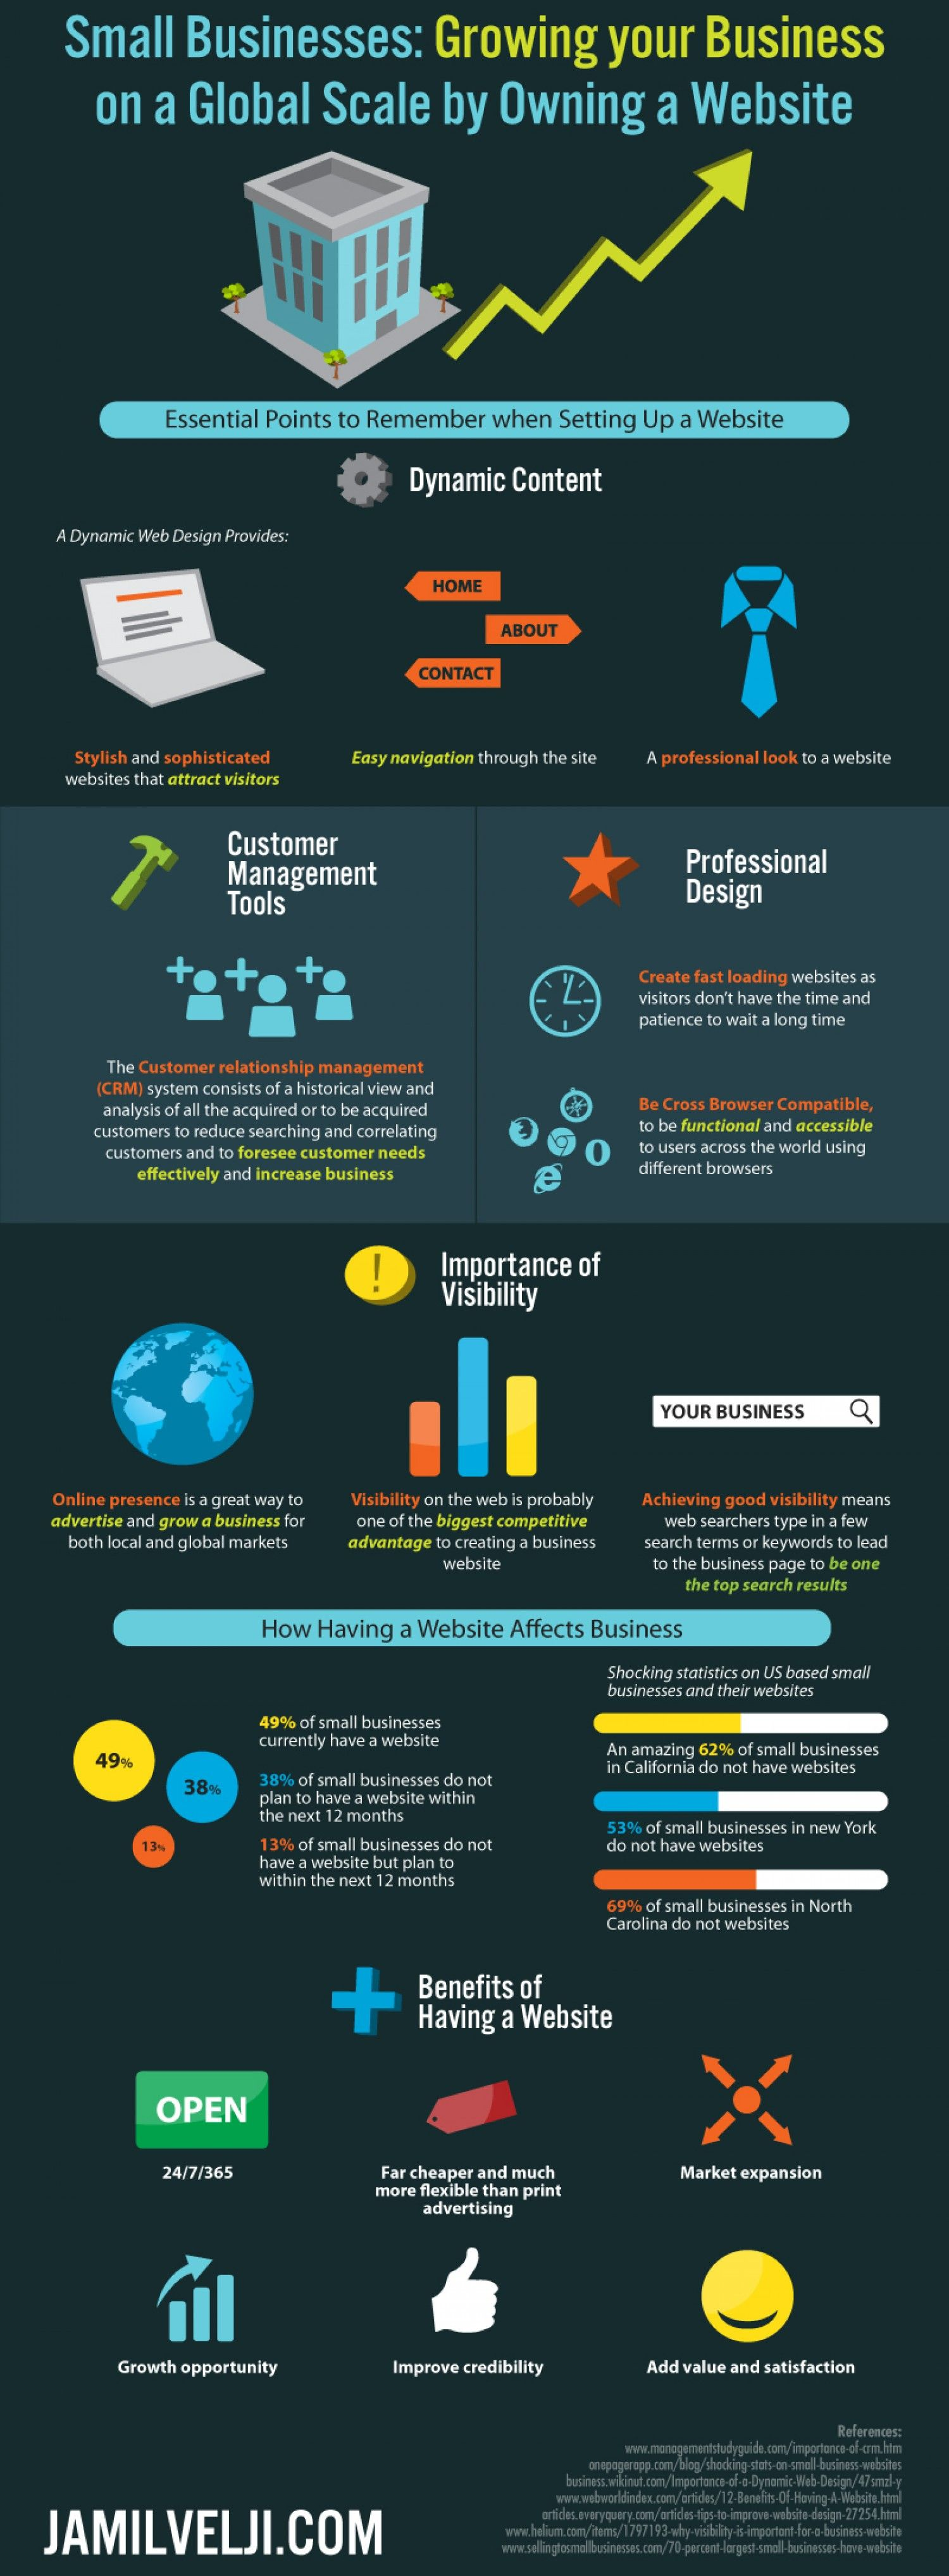 The Importance Of A Website To Small Businesses An Infographic On The Ability For Small Businesses To Grow Their Busine Infographic Tool Design Website